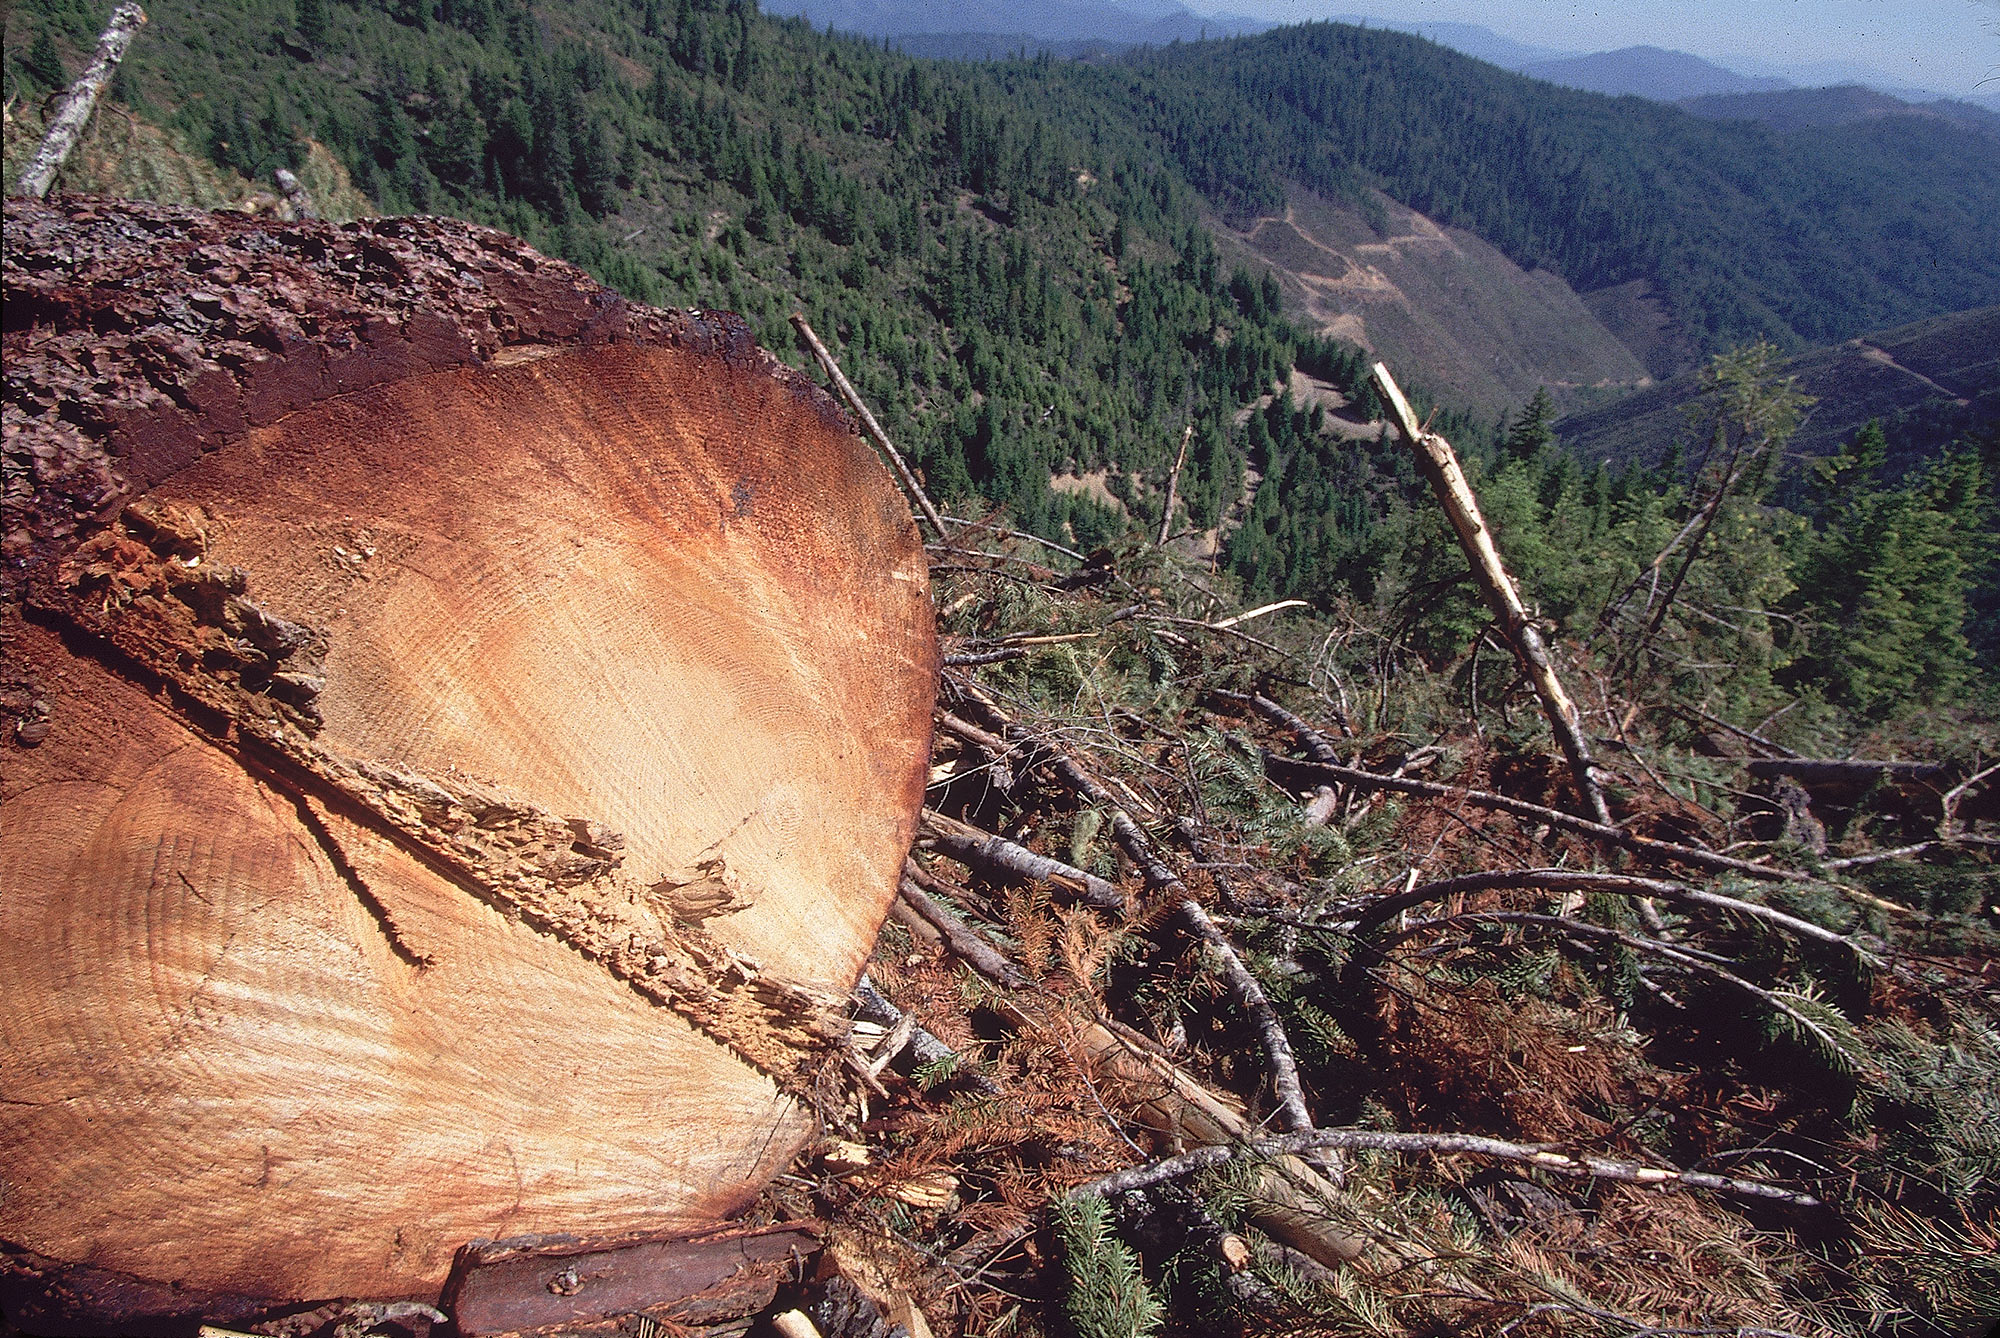 Siskiyou National Forest of Oregon with a Clearcut Forest area.